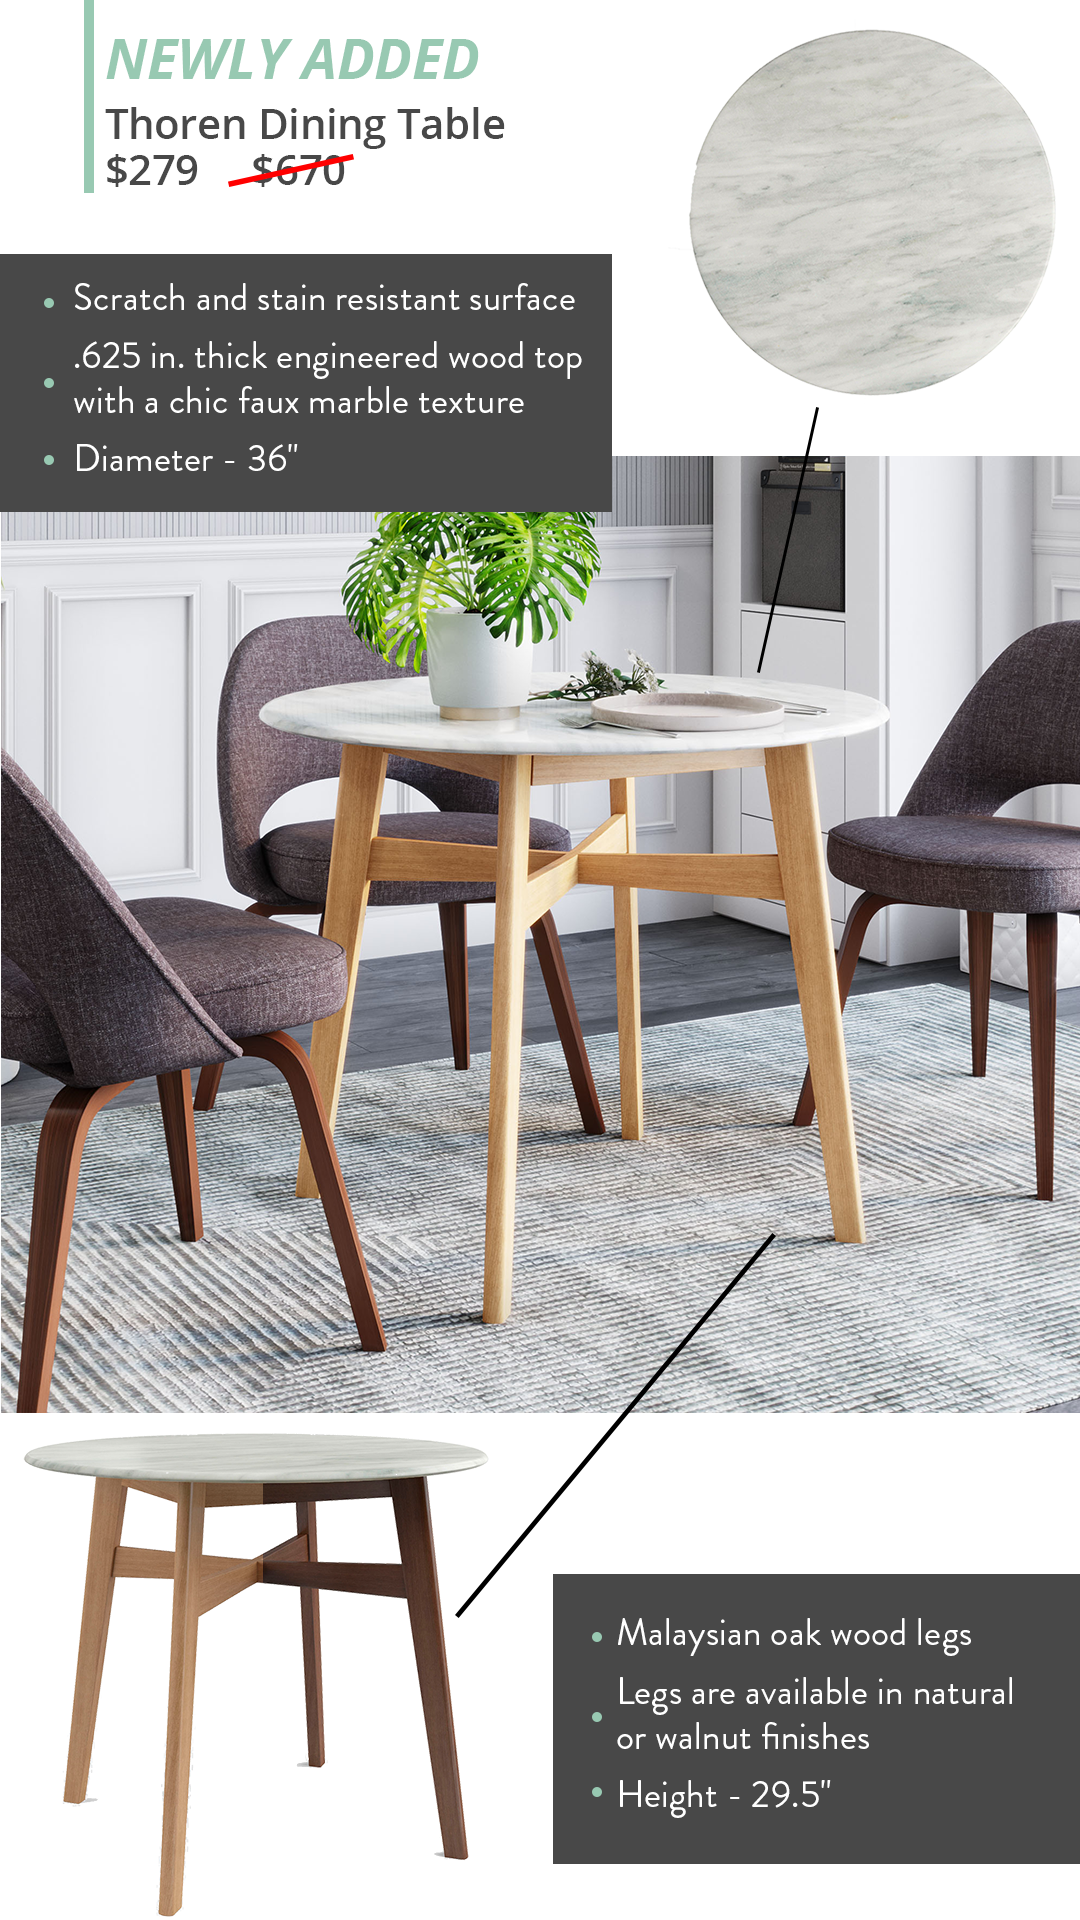 Thoren Dining Table Dining Table Eclectic Chairs Dining